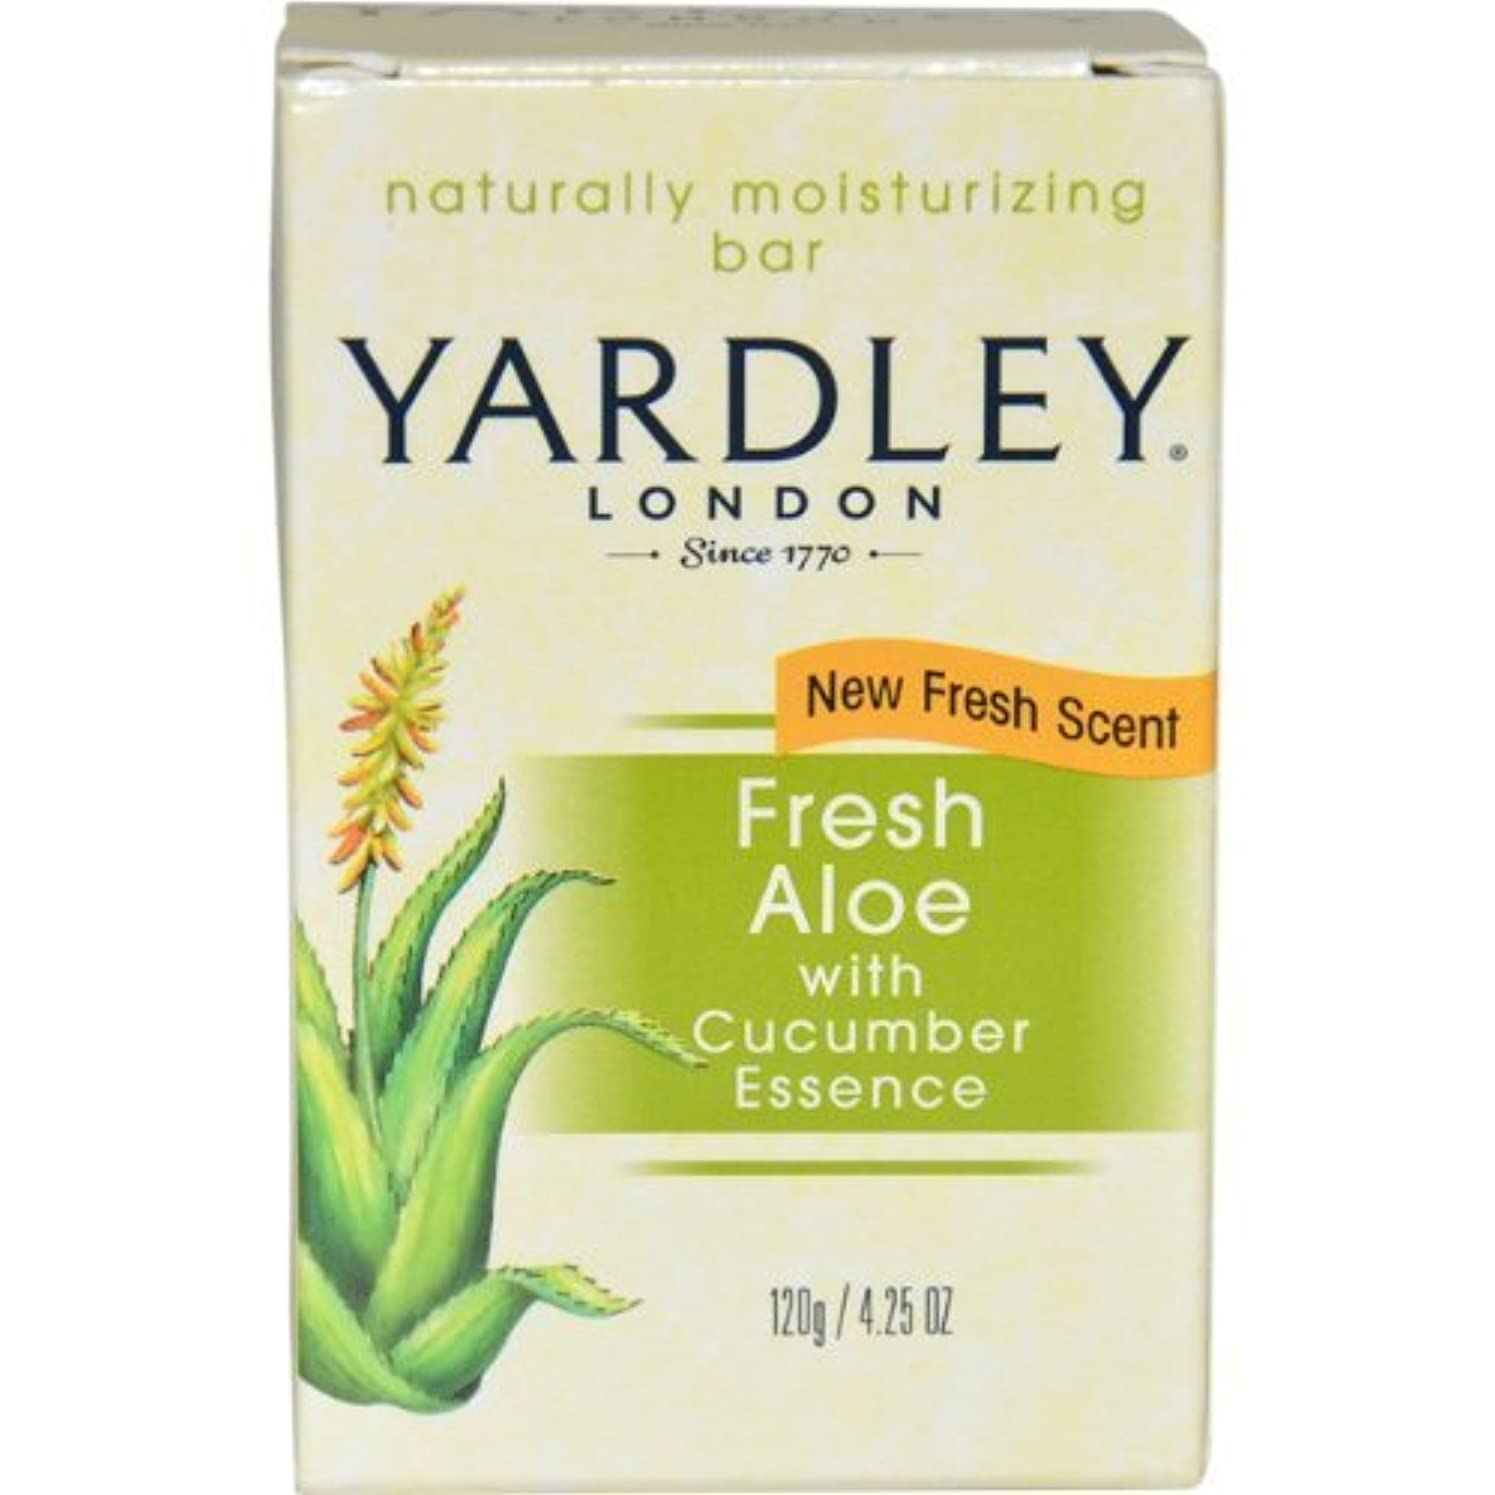 メニューごめんなさい不足Fresh Aloe with Cucumber Essence Bar Soap Soap Unisex by Yardley, 4.25 Ounce (Packaging May Vary) by Yardley [並行輸入品]